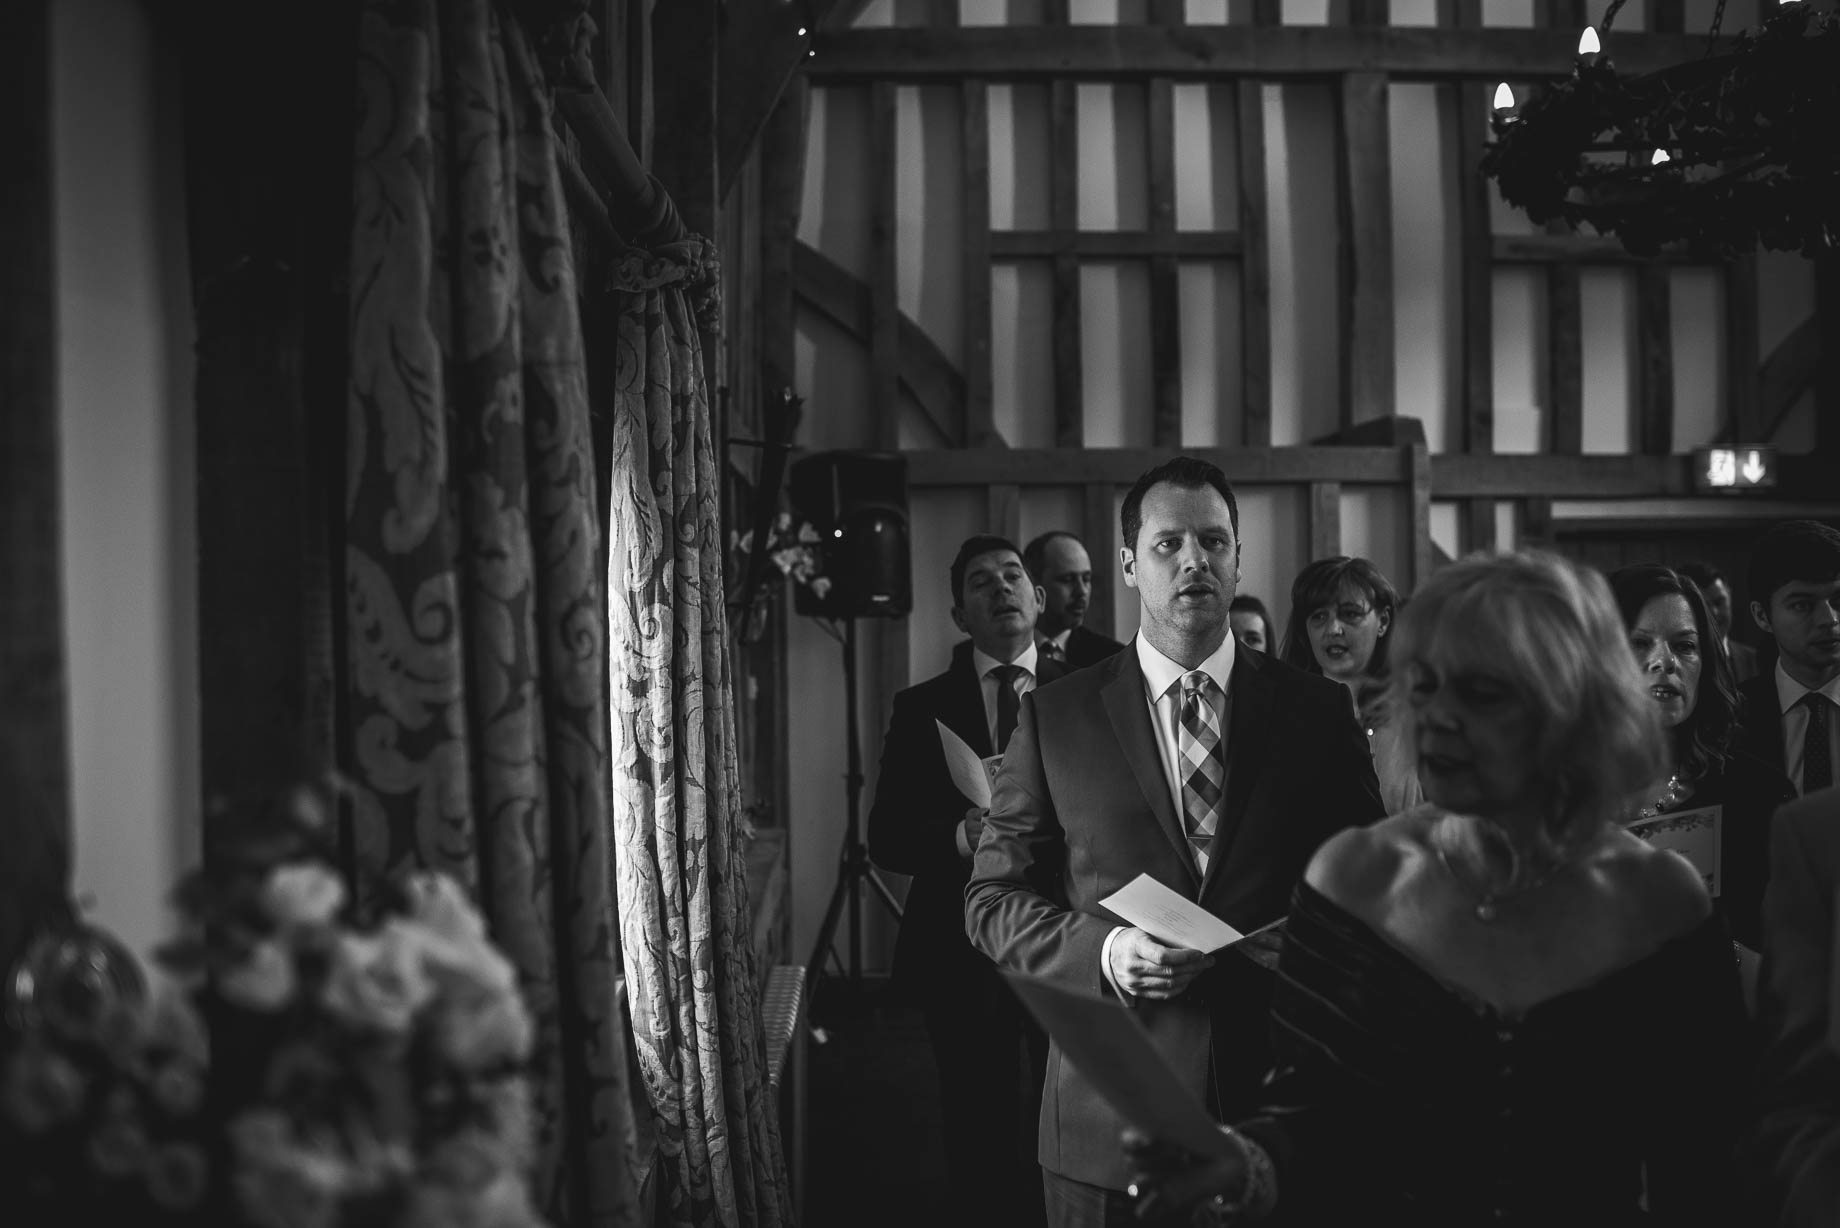 Surrey Wedding Photography by Guy Collier - Becca and James (40 of 145)